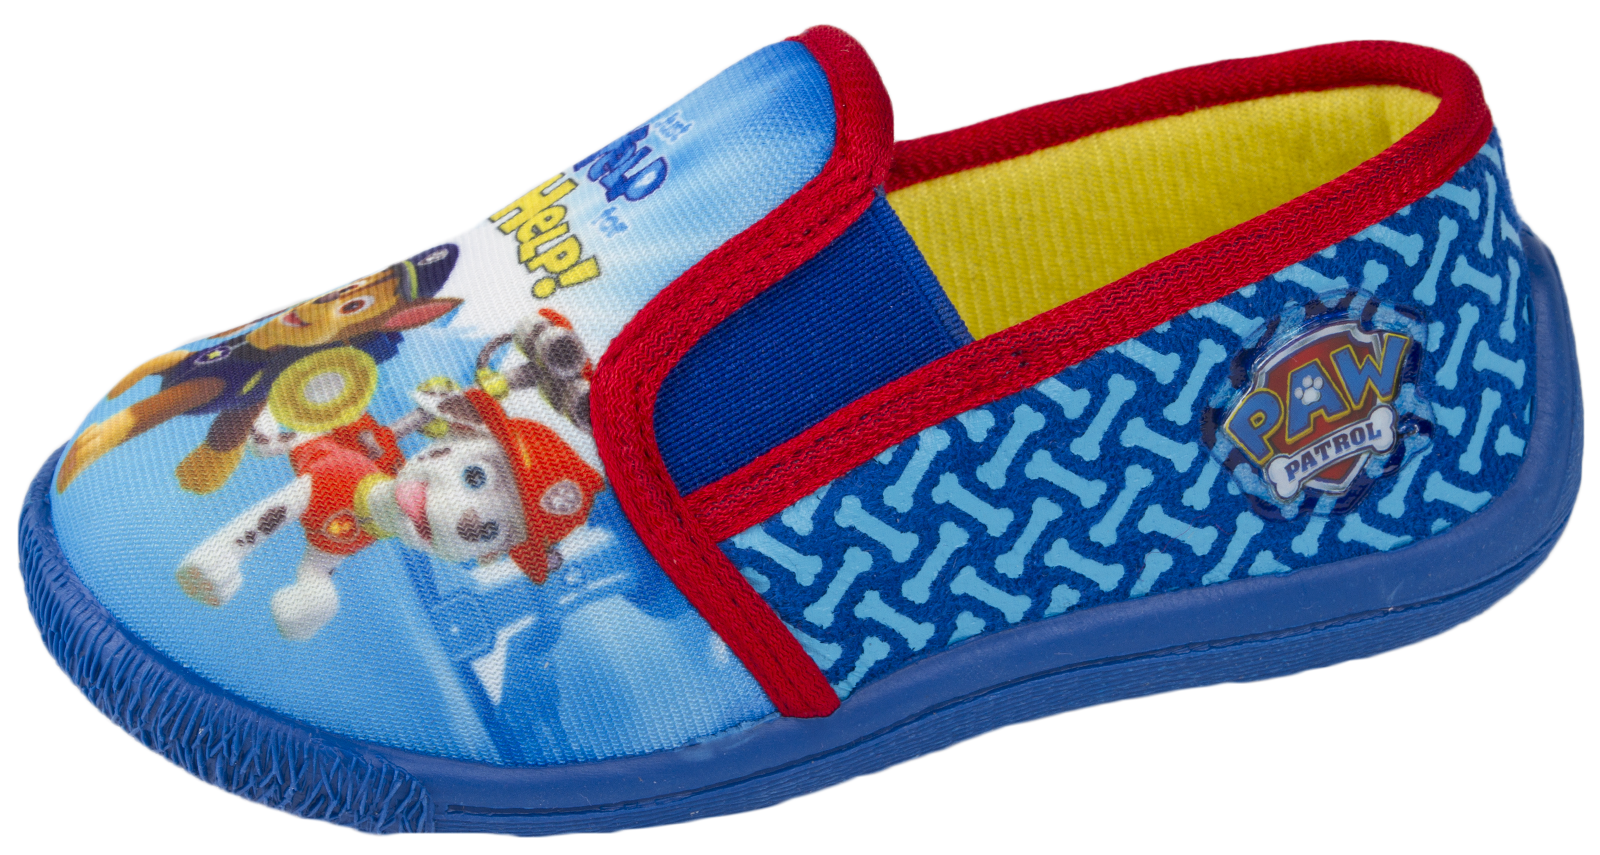 paw patrol slippers - 28 images - paw patrol slippers